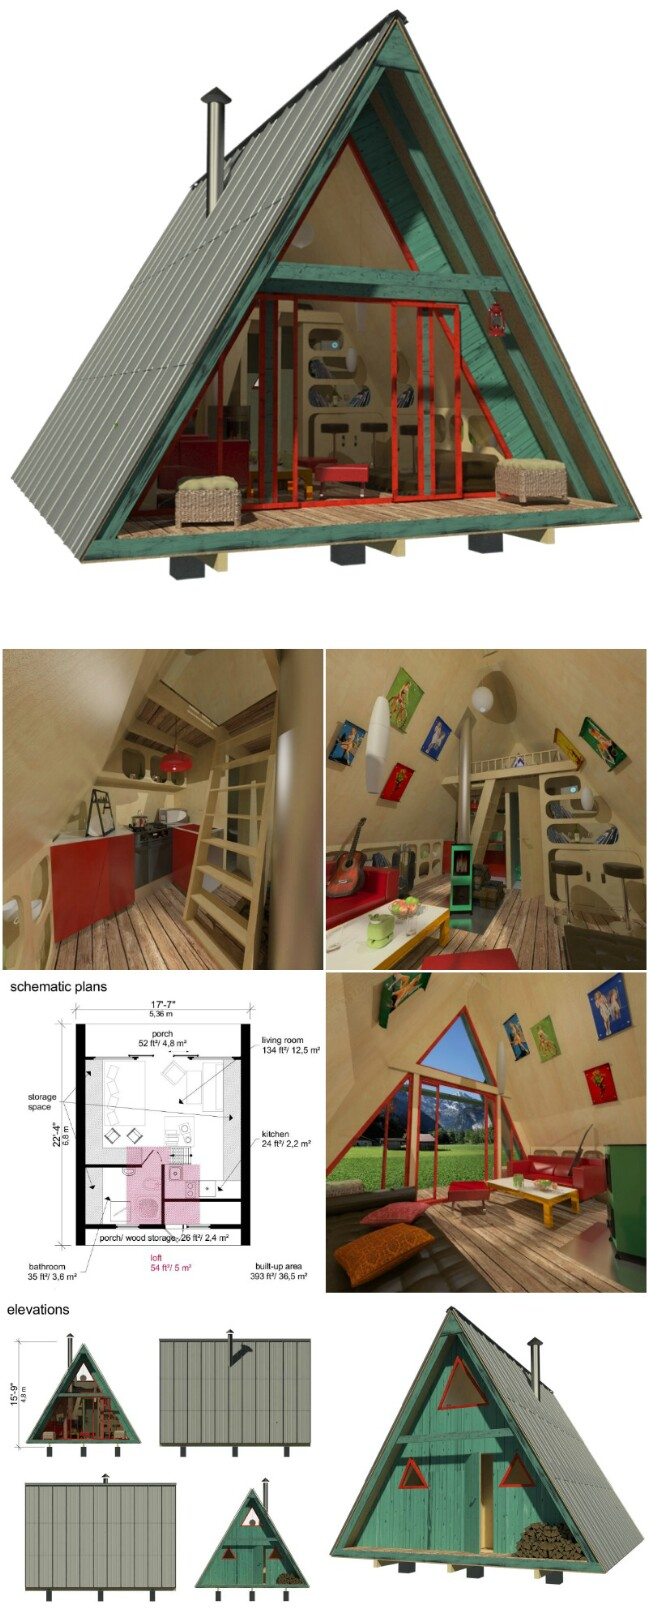 25 plans to build your own fully customized tiny house on for Houses and their plans